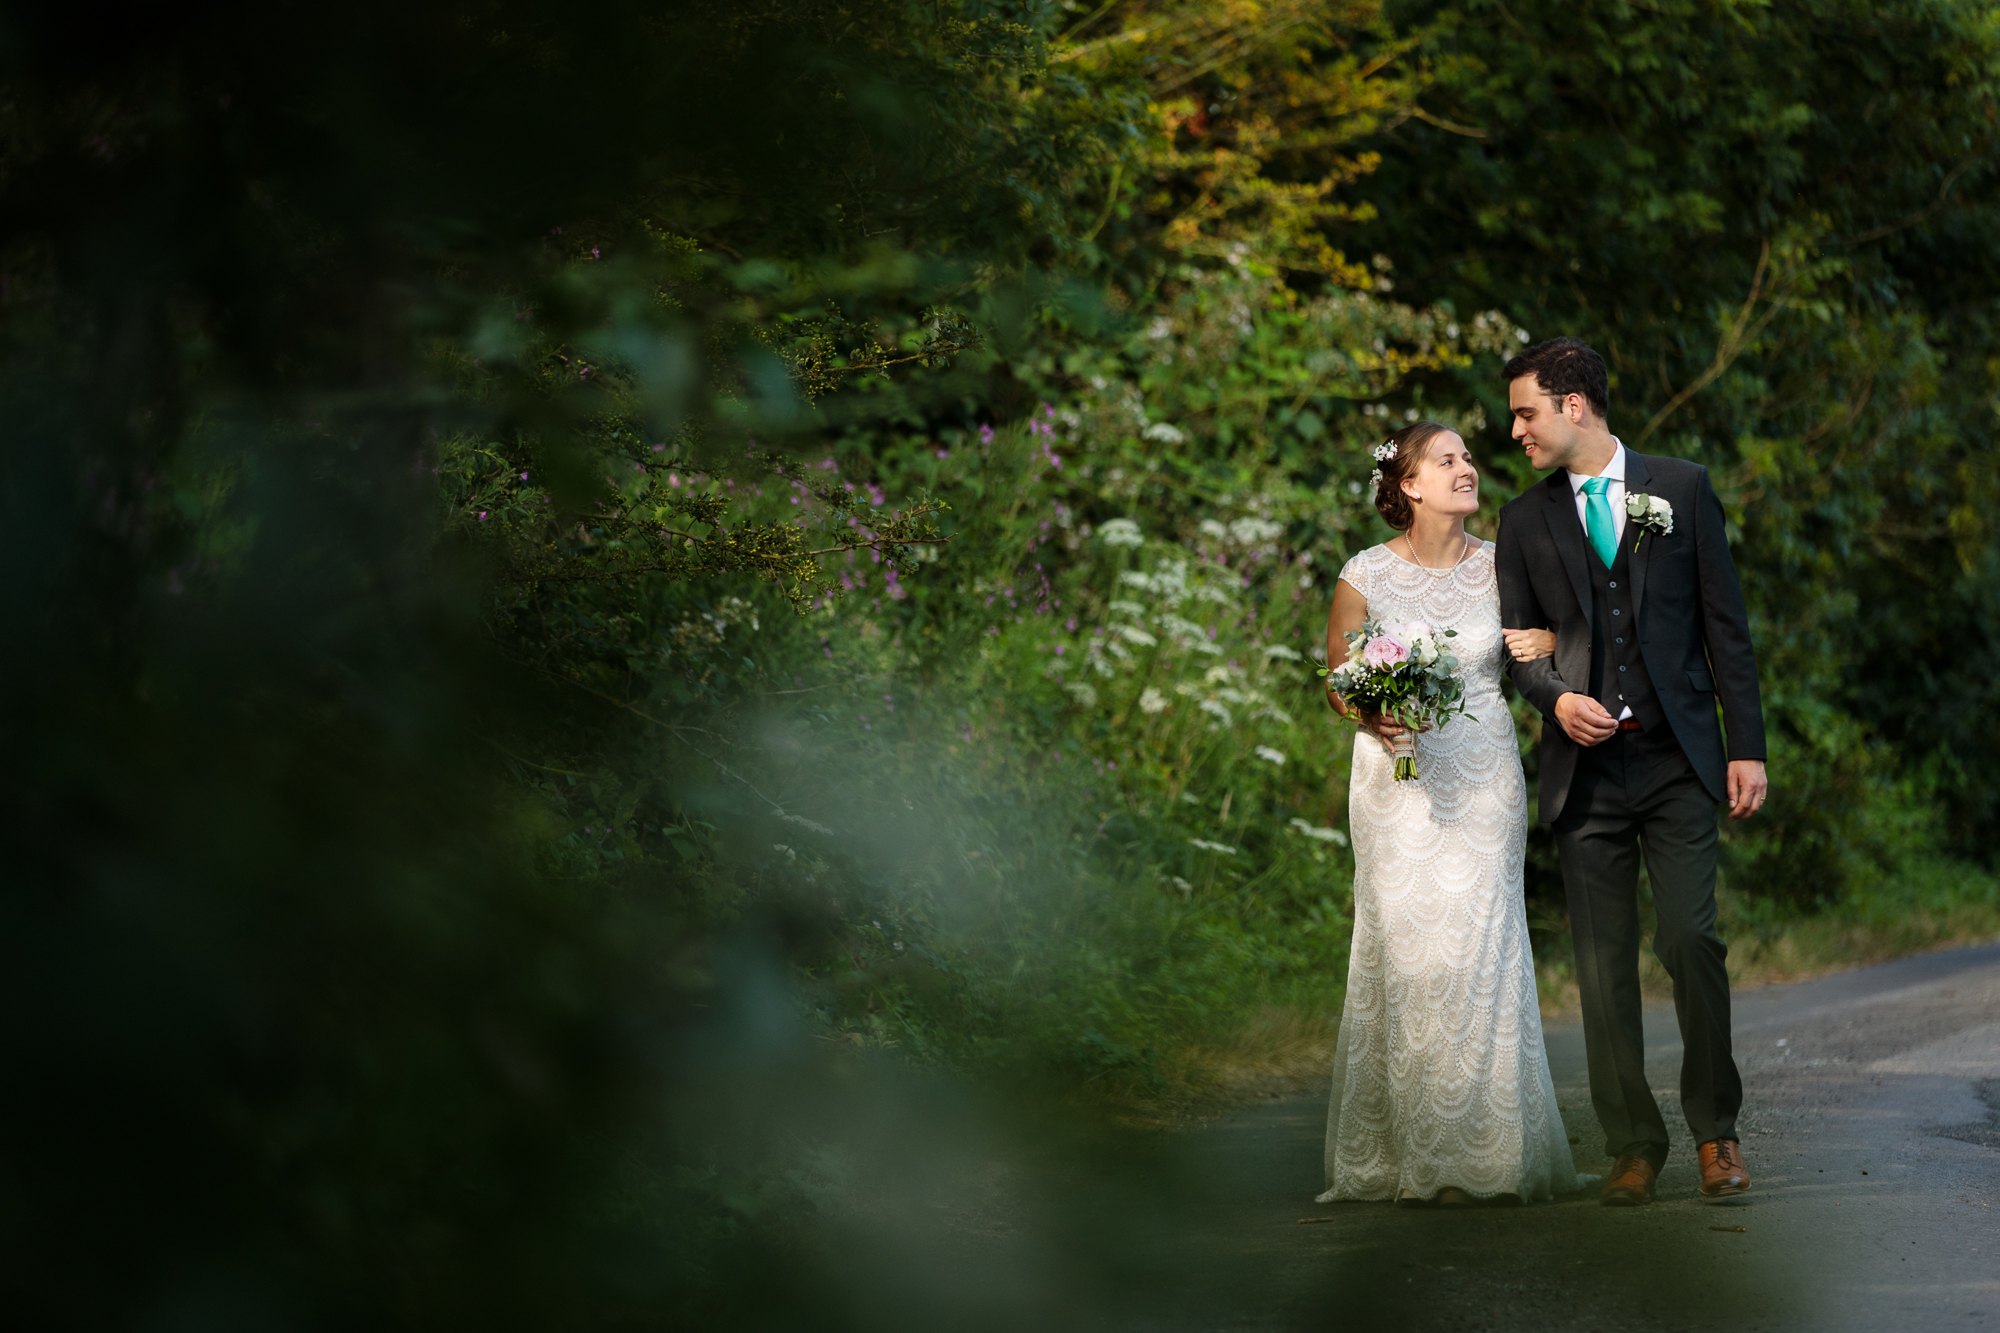 Elspeth & Gareth's testimonial for their Kent Wedding Photography